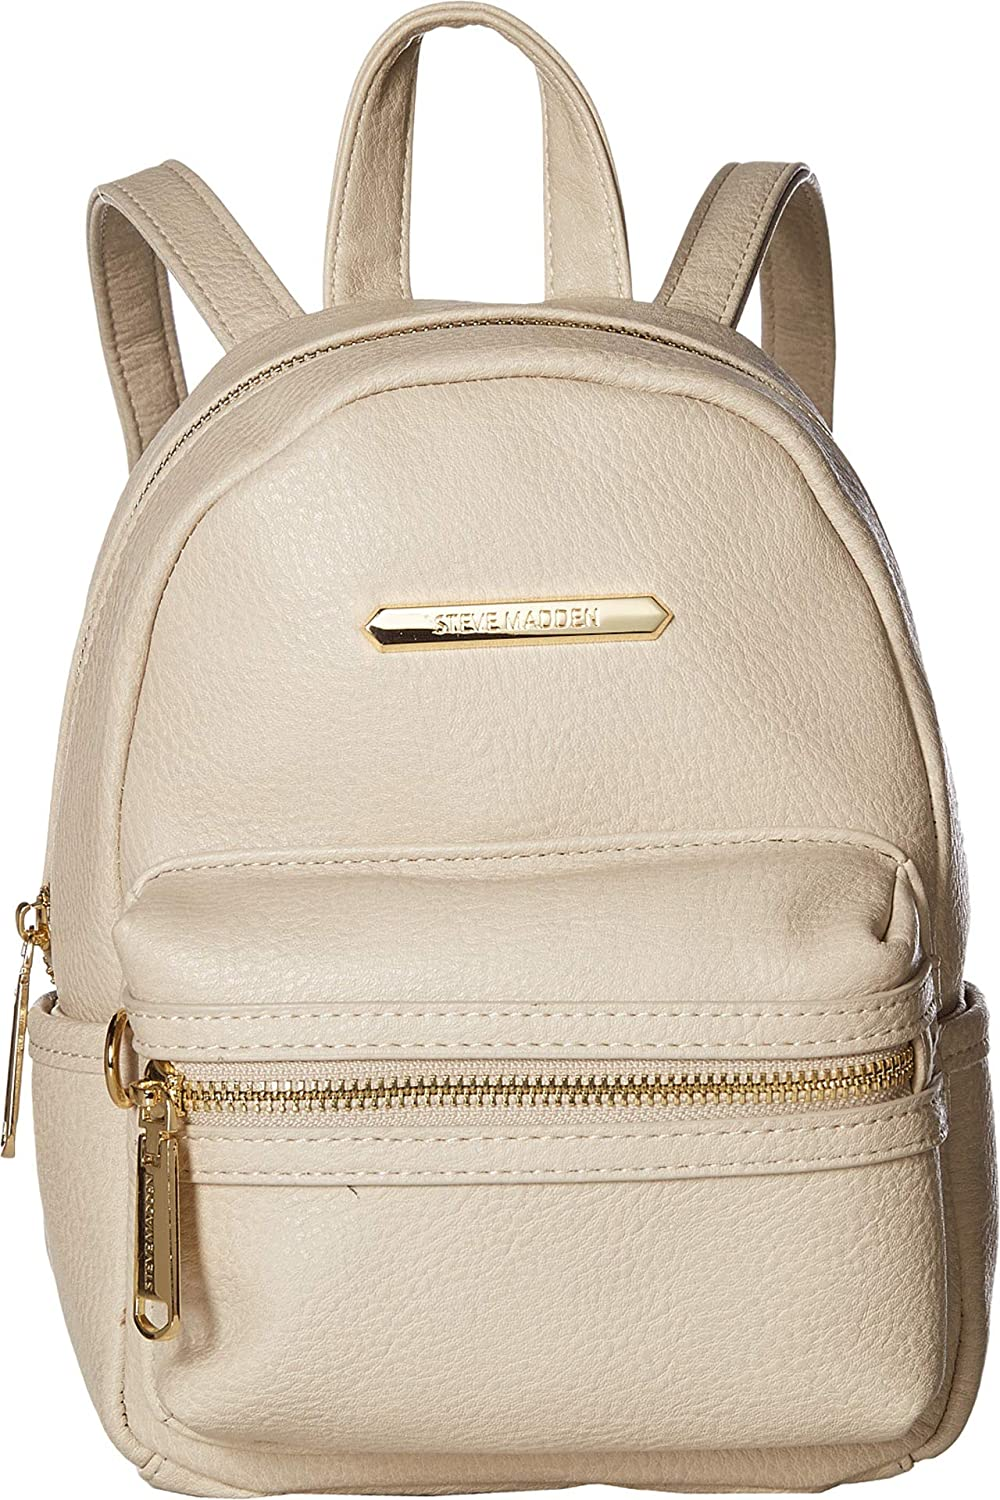 1035af0284 Amazon.com: Steve Madden Women's Bbailey Core Backpack Bone One Size:  Clothing